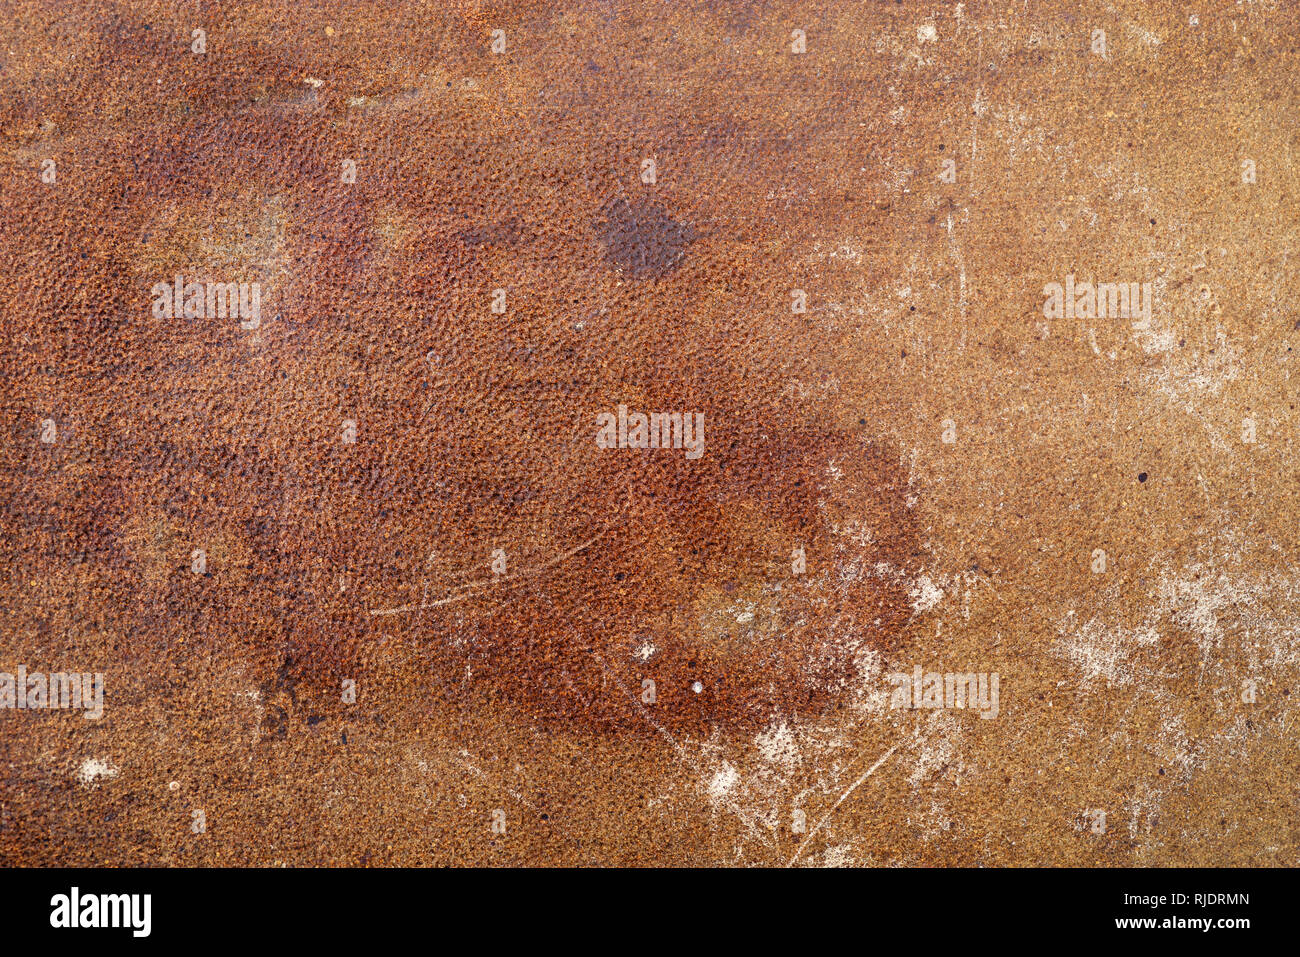 old distressed stained and scuffed leather background texture - Stock Image